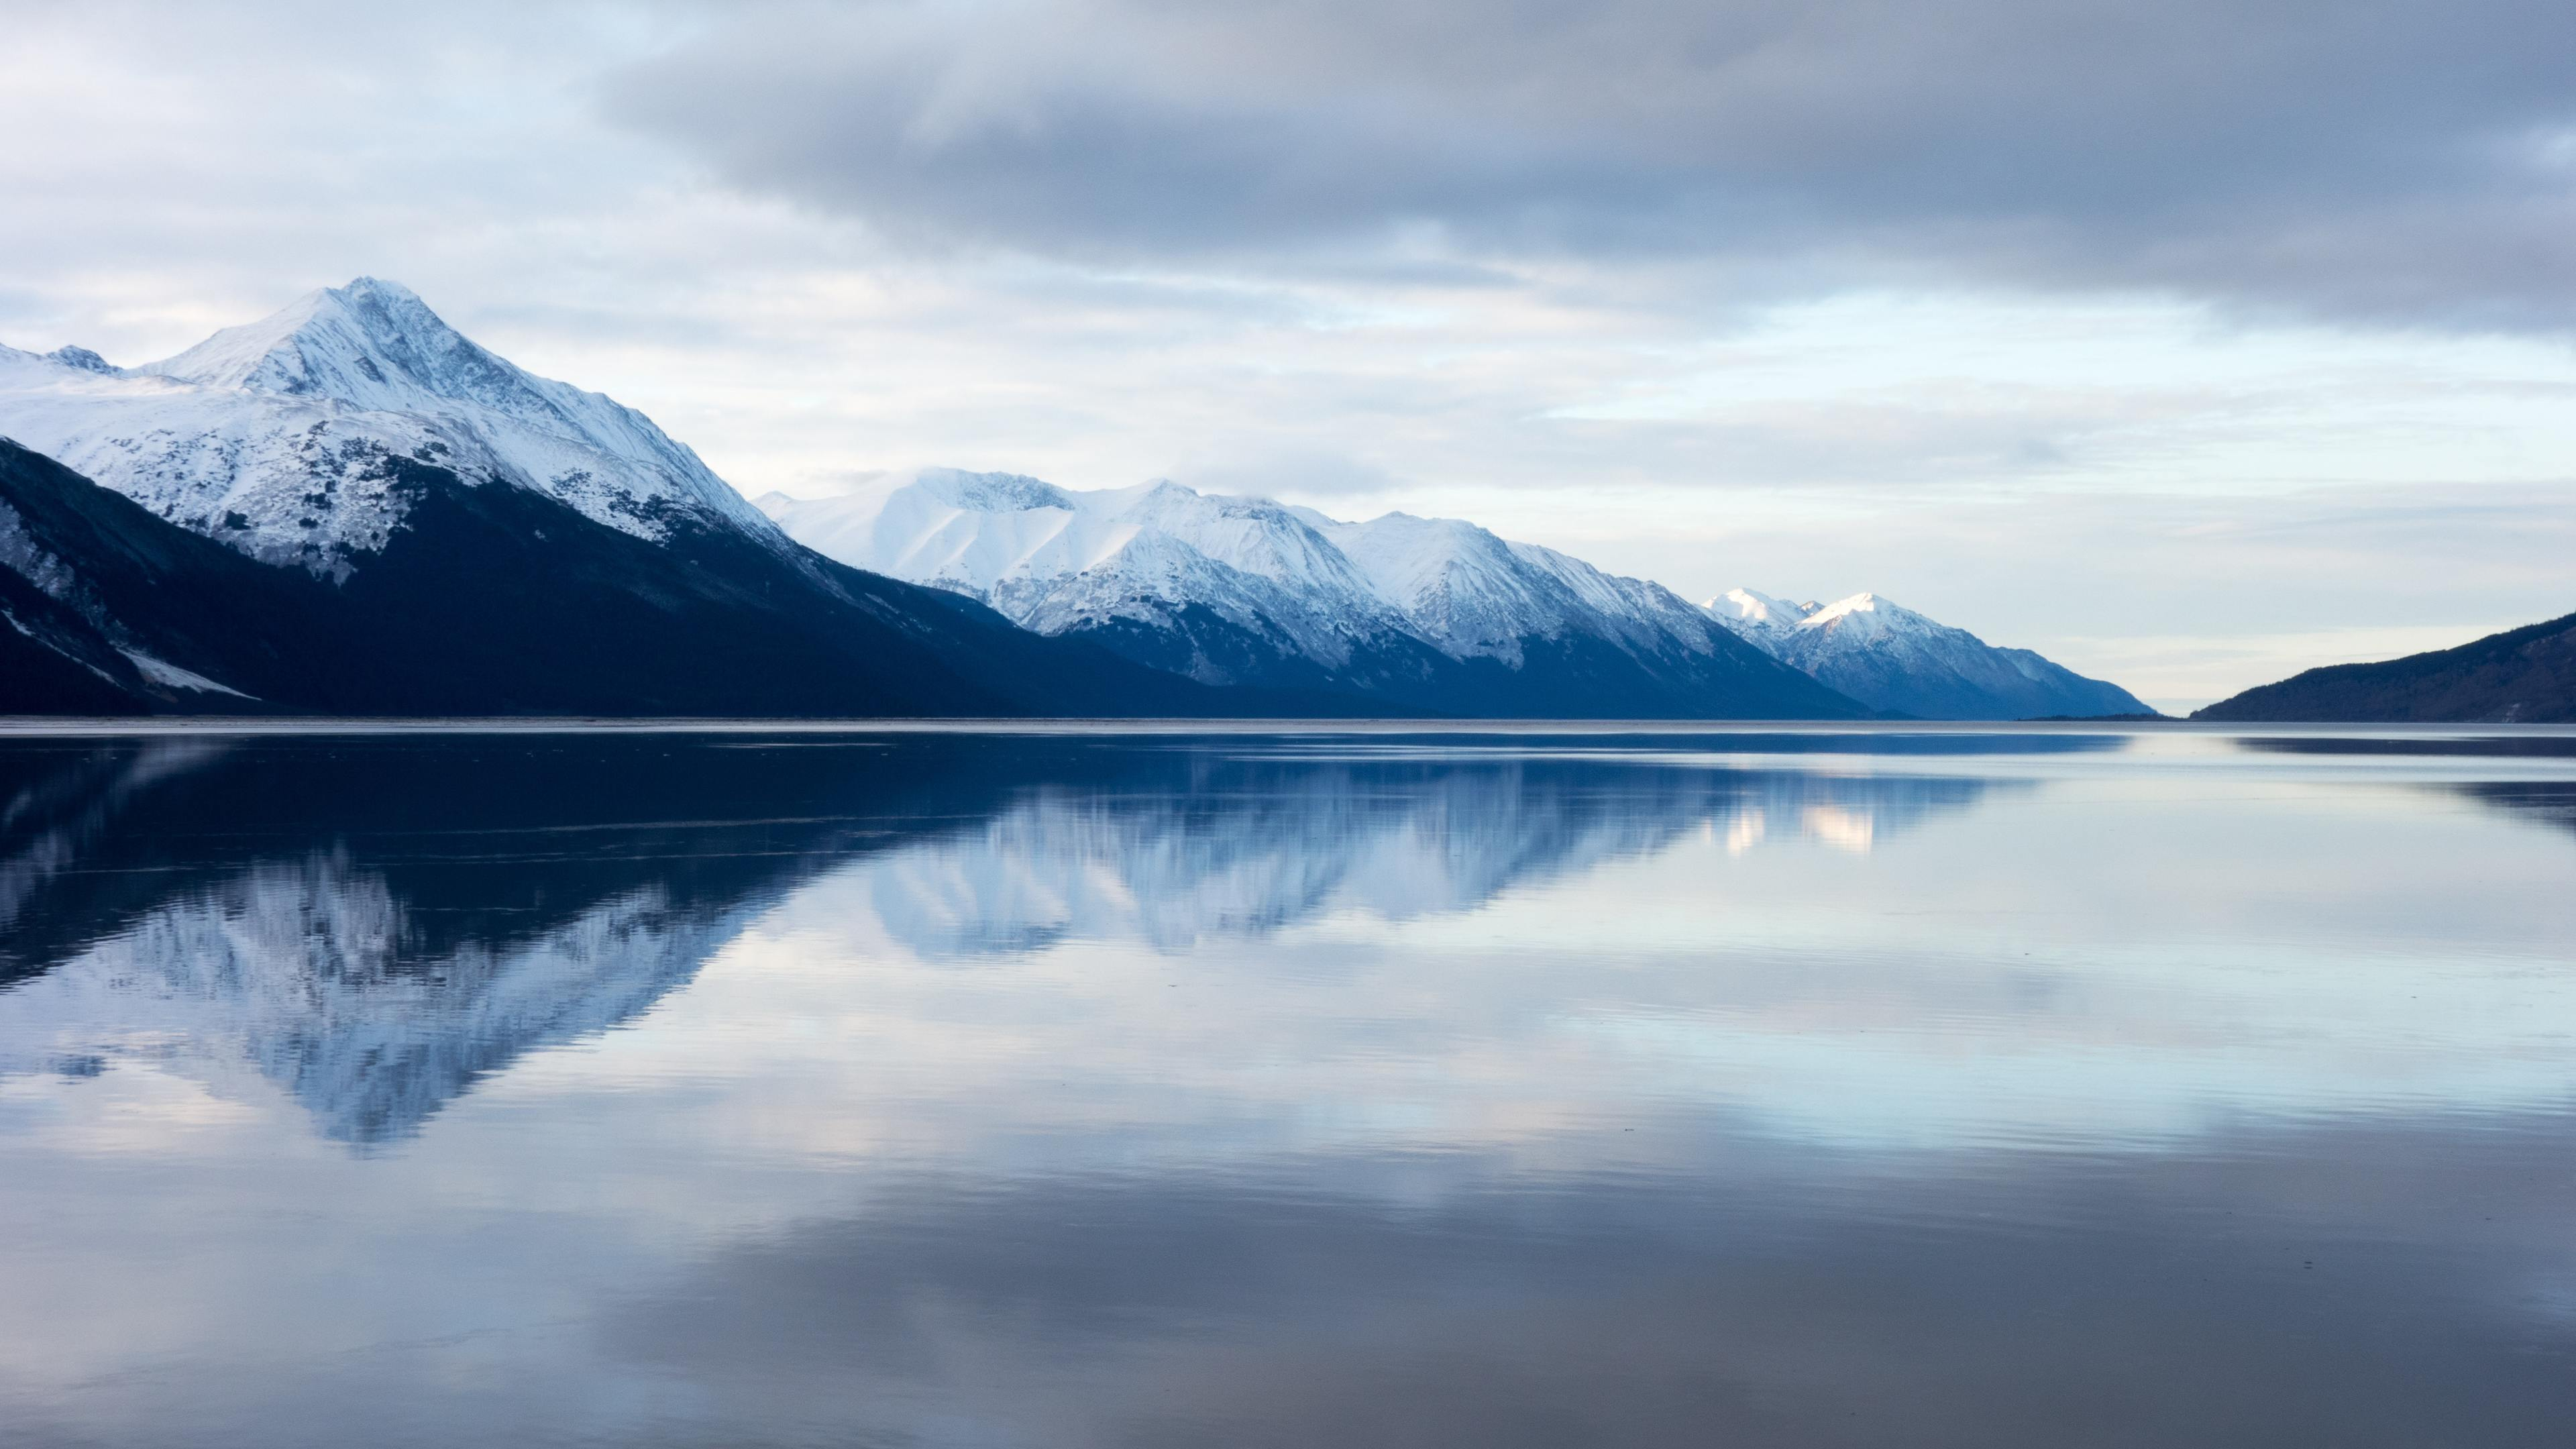 snow capped mountains 1540141535 - Snow Capped Mountains - snow wallpapers, reflection wallpapers, nature wallpapers, mountains wallpapers, hd-wallpapers, 5k wallpapers, 4k-wallpapers